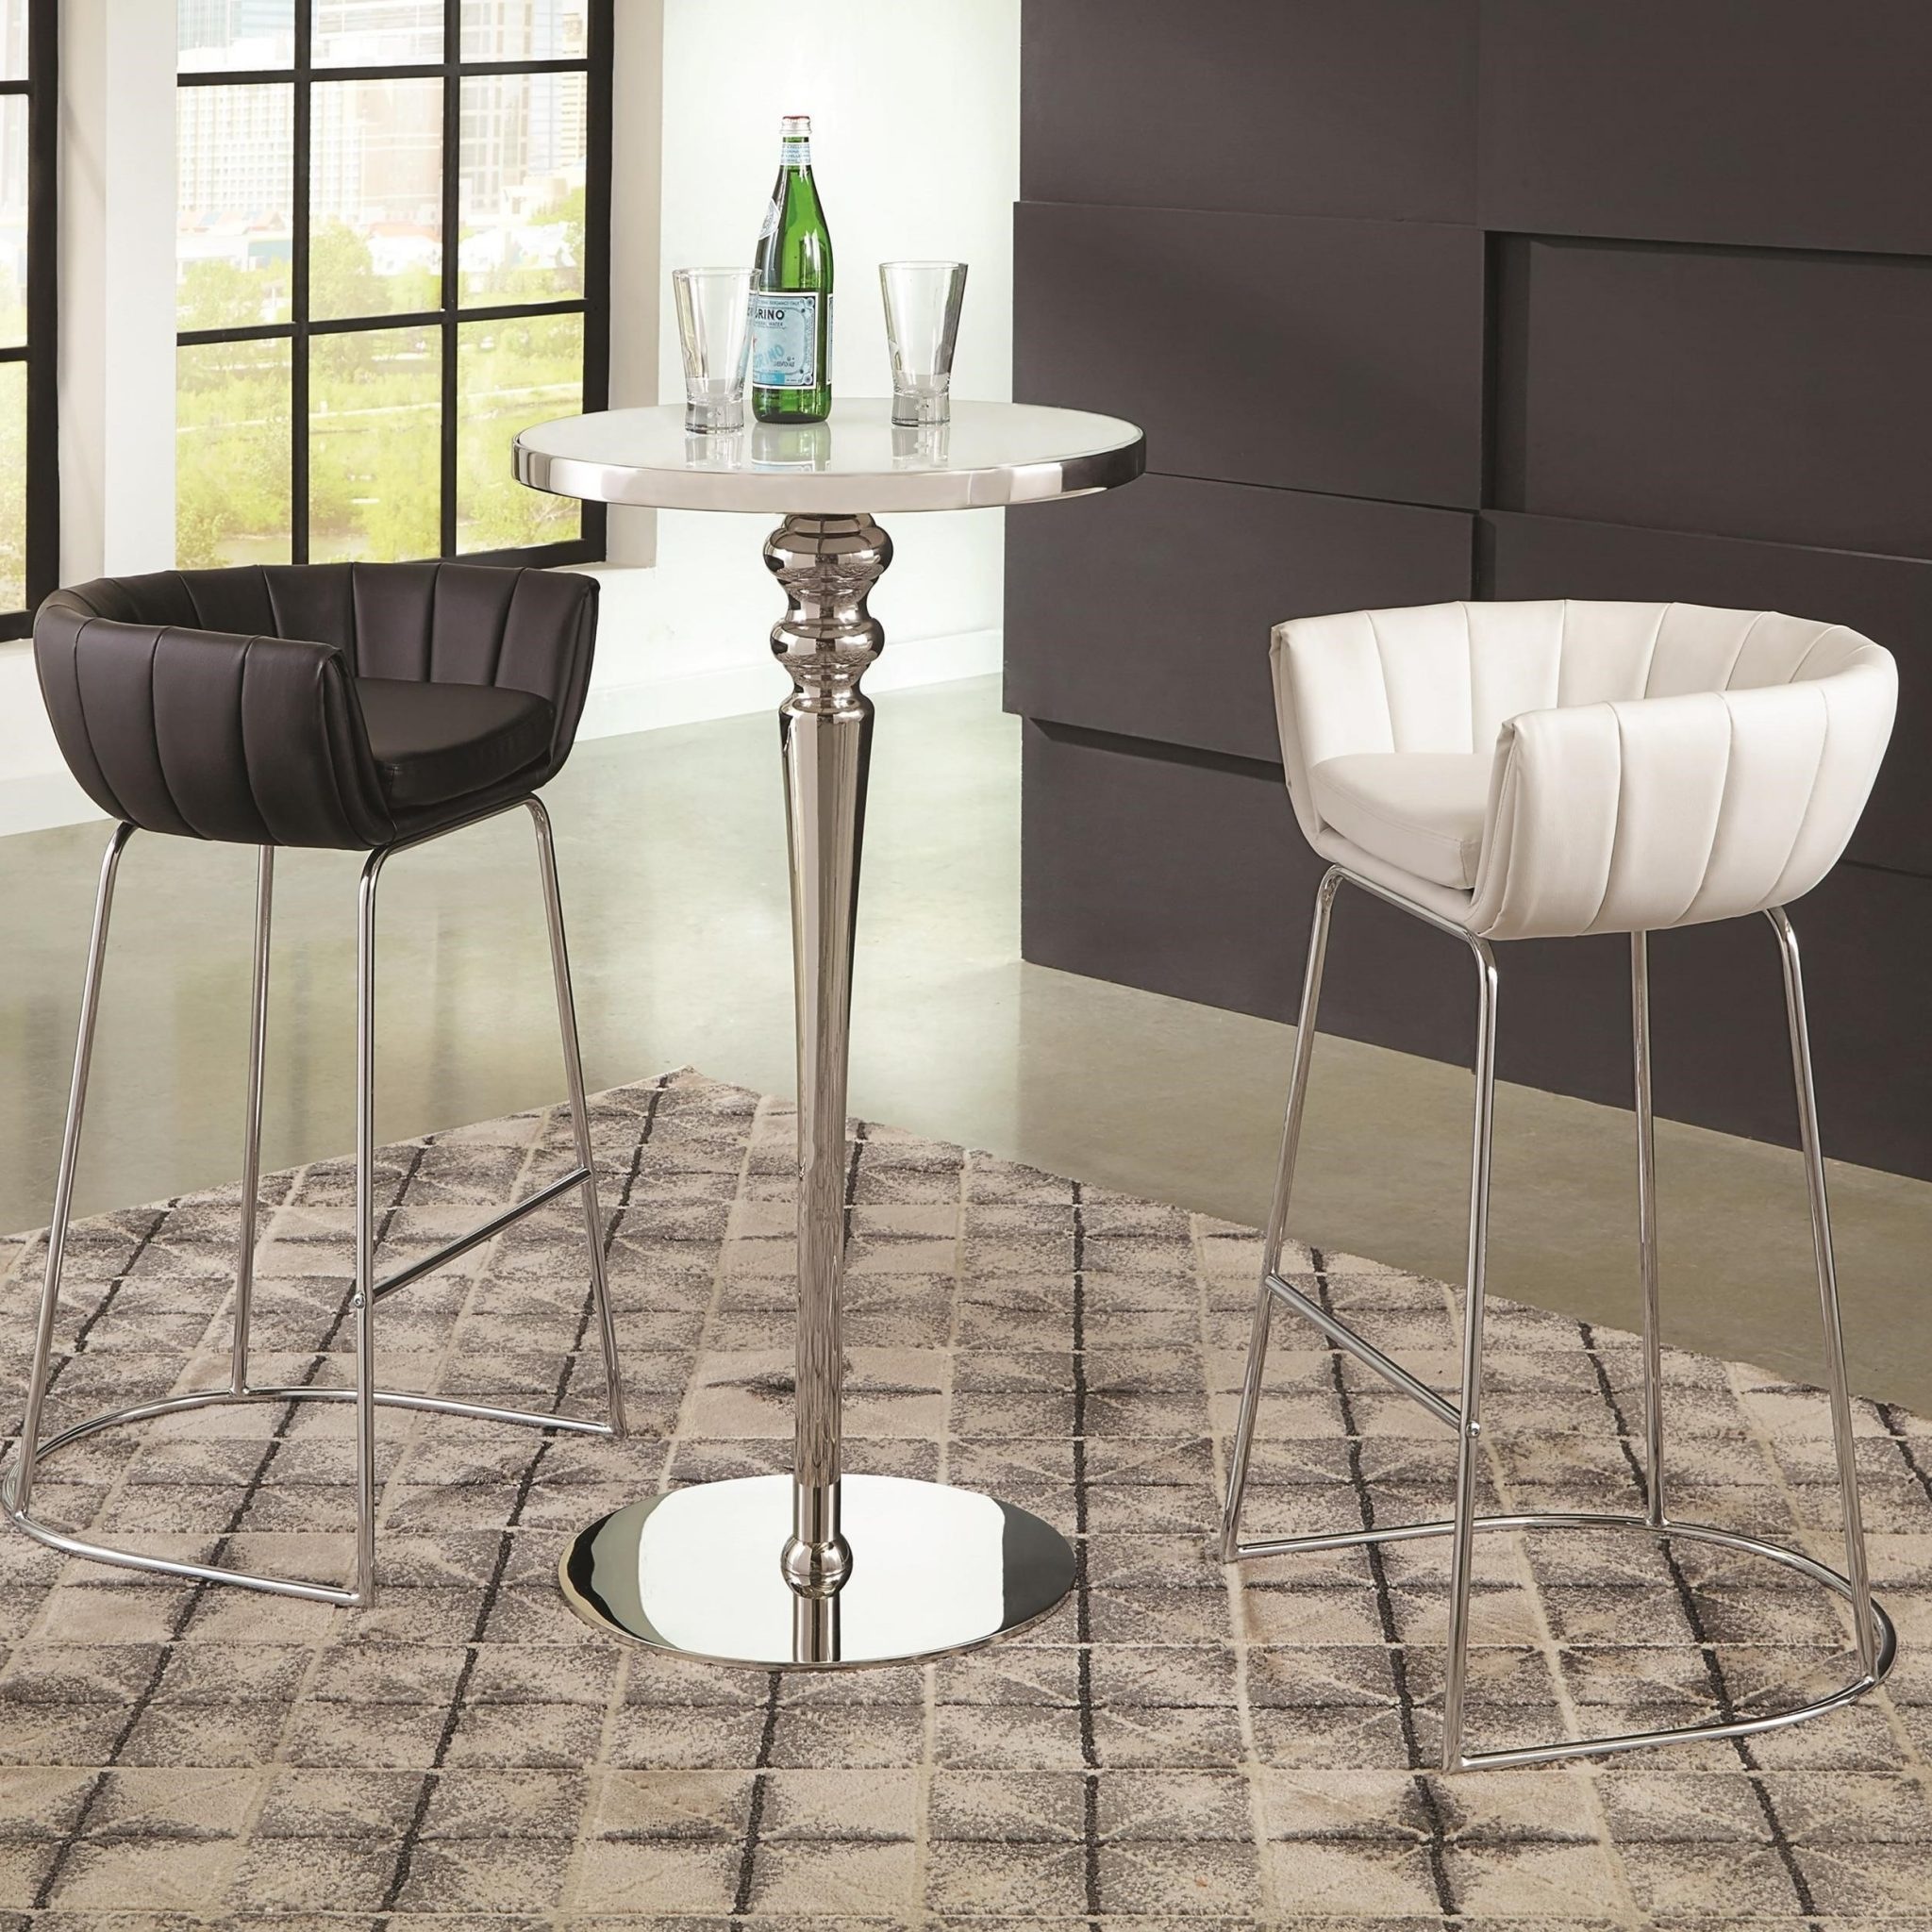 Dixon Contemporary Bar Table And Stool Set 3 Pc S By Coaster Furniture Expo Outlet